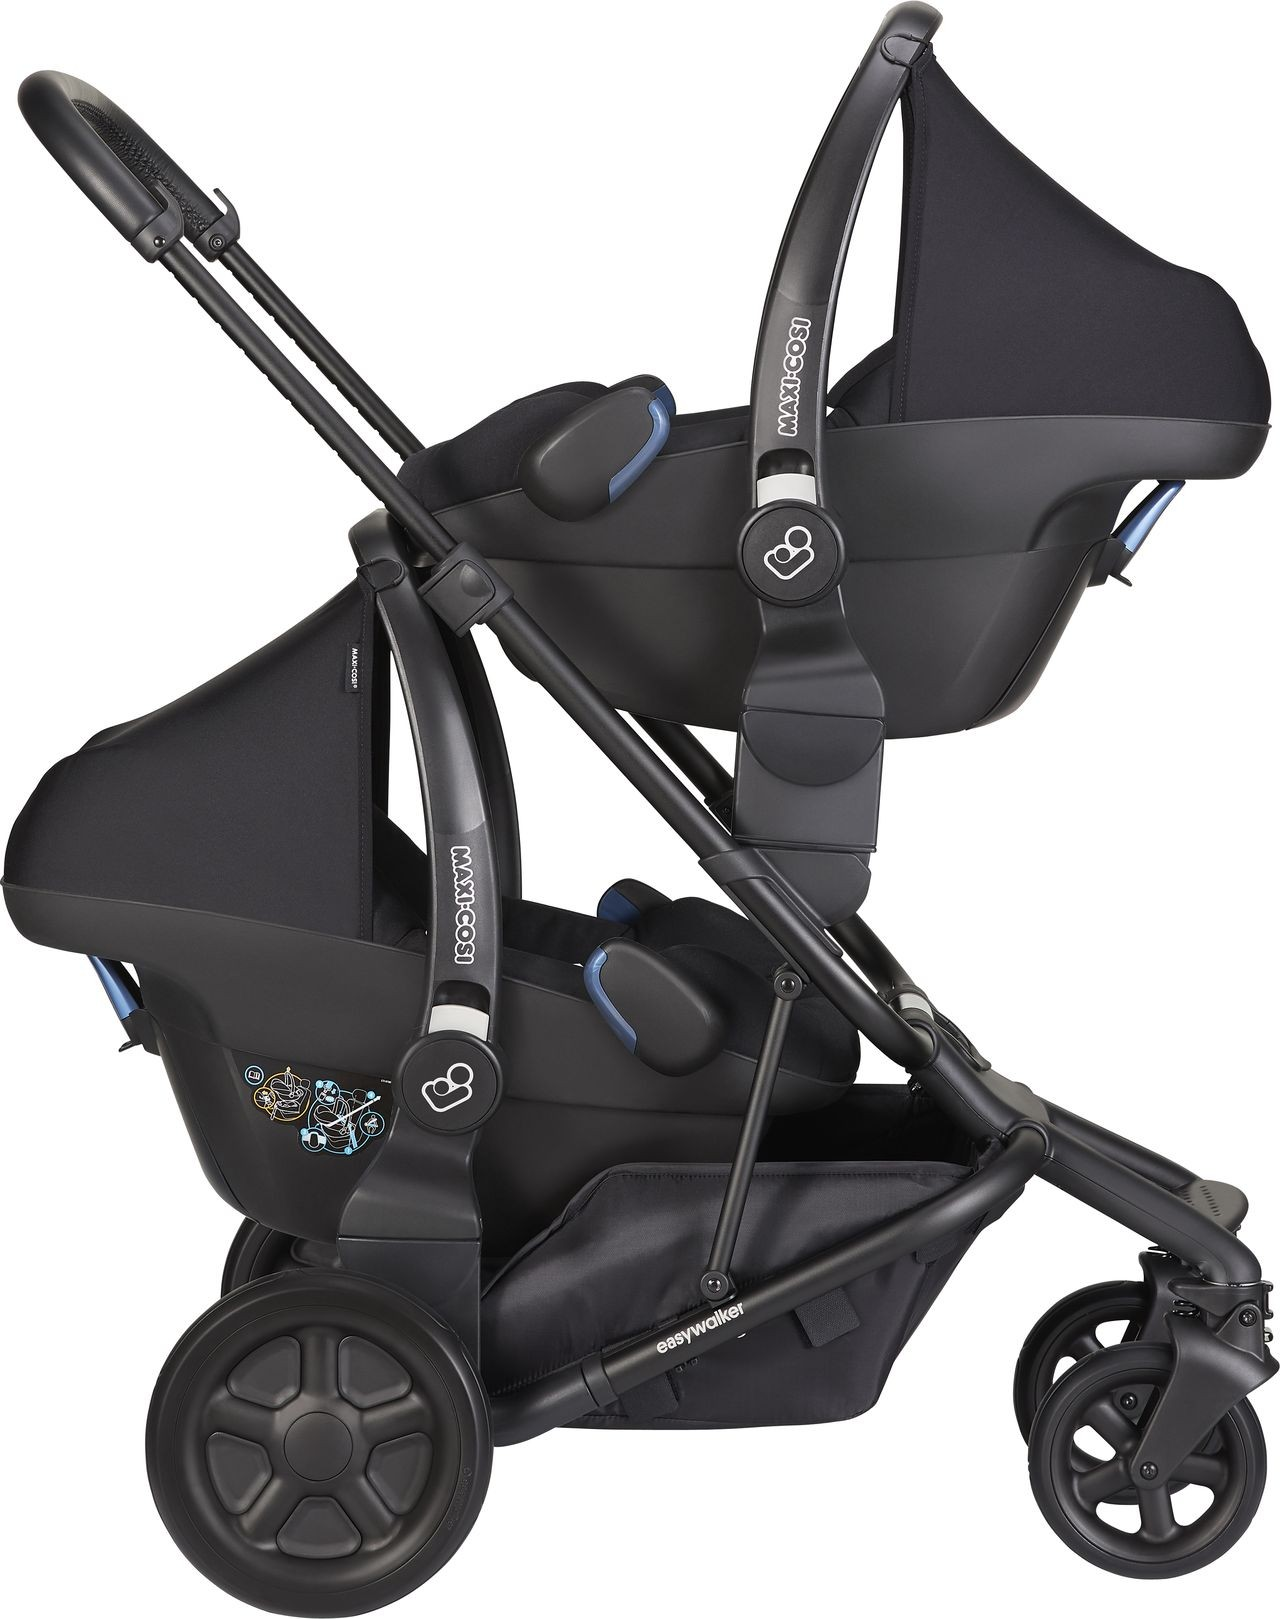 Kinderwagen Easywalker Duo Autositz Adapter Set Easywalker Harvey Kleine Fabriek